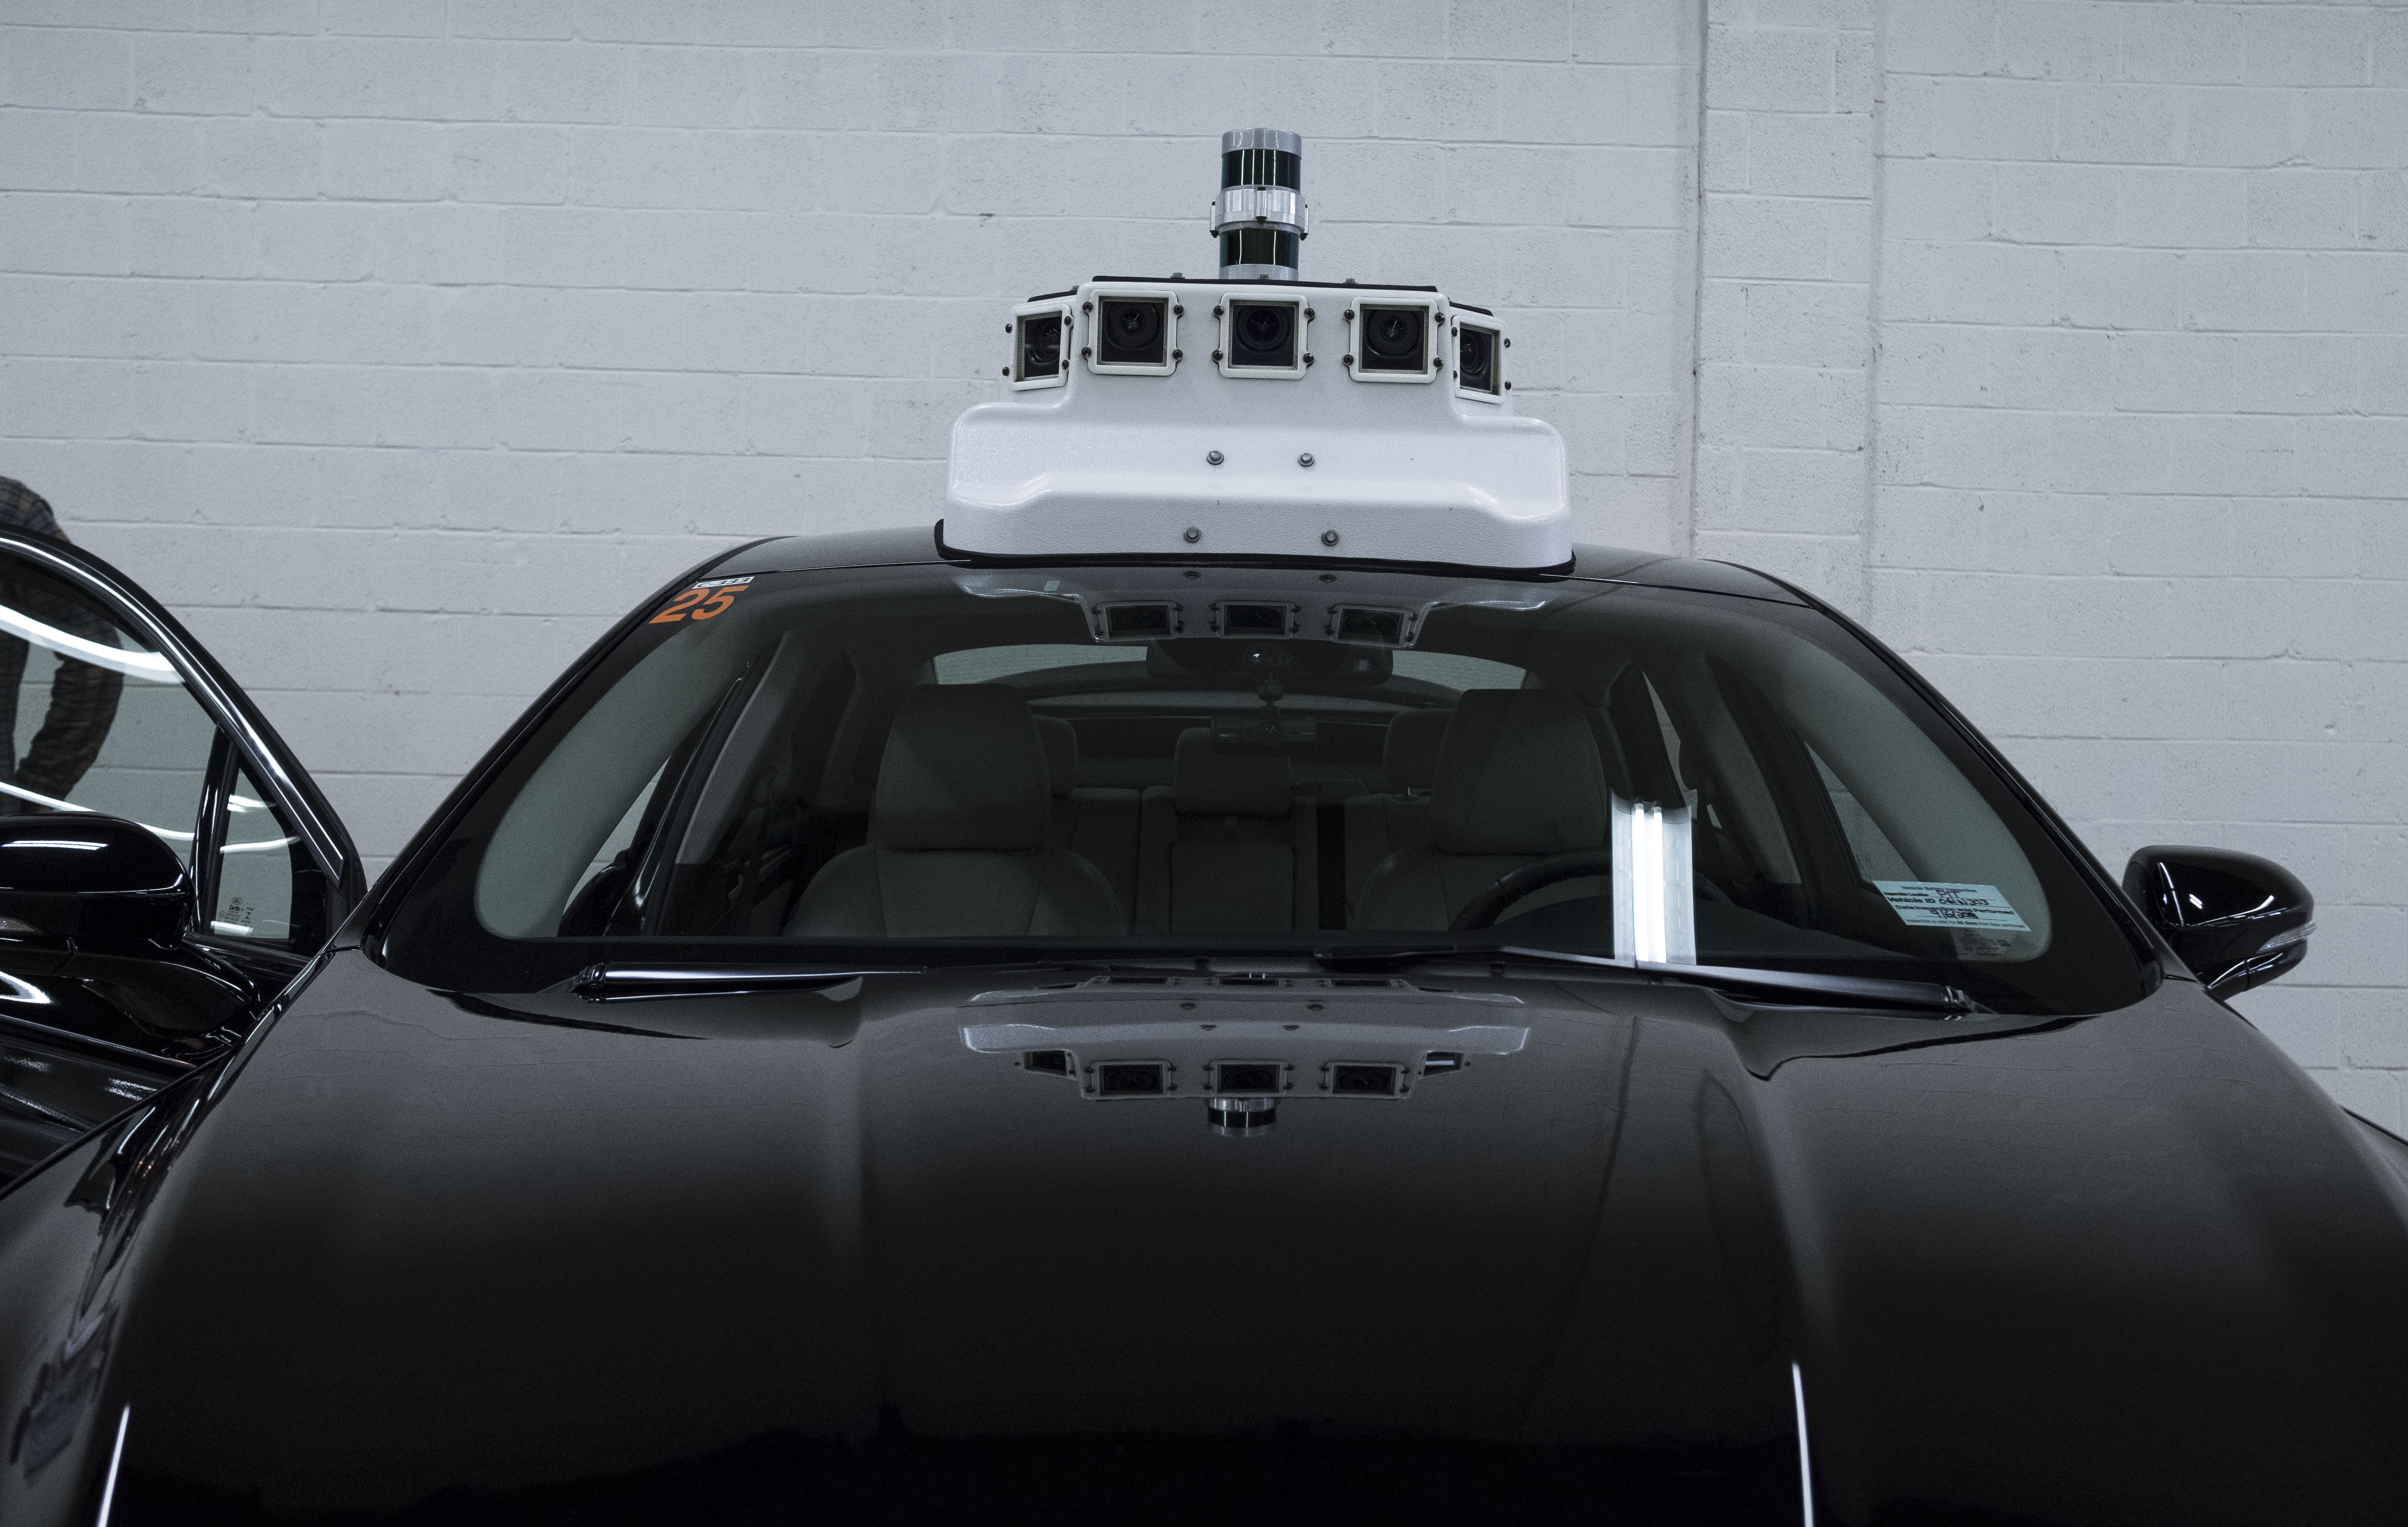 Self-driving cars will have to decide who should live and